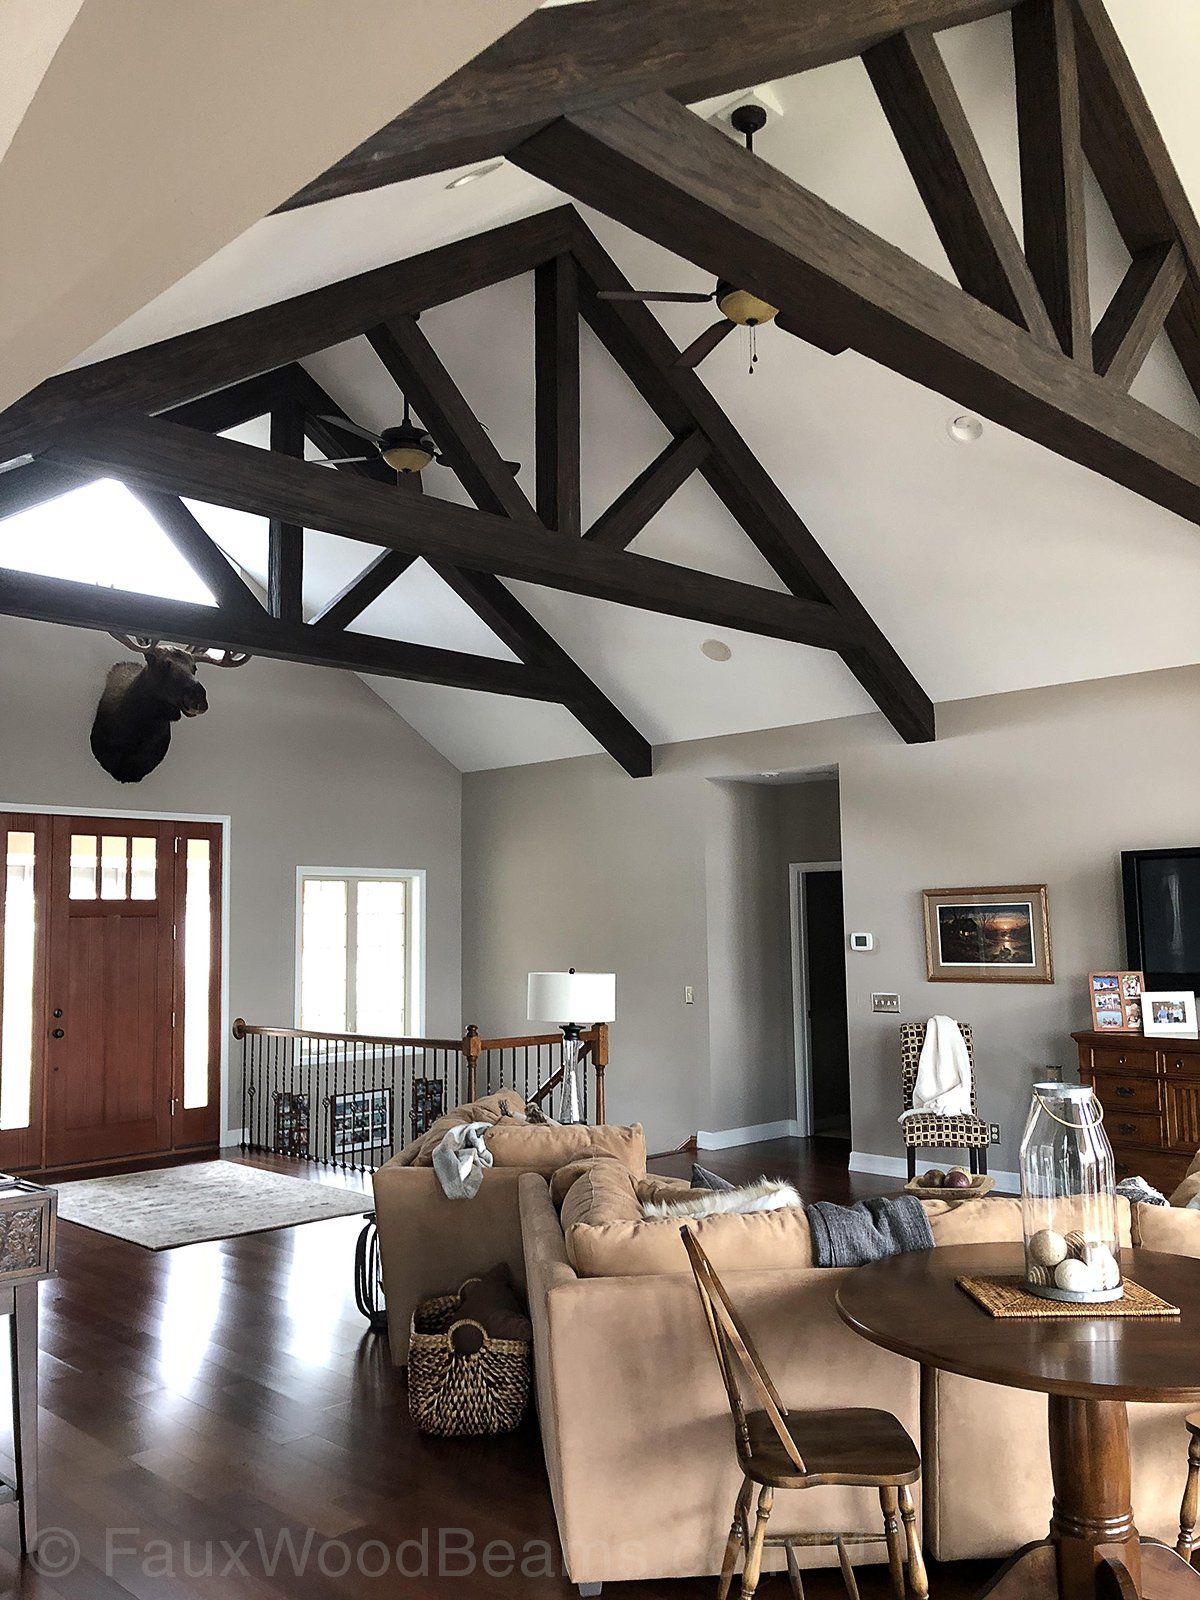 Room In Attic Truss Design: Stunning Home Interior Pictures